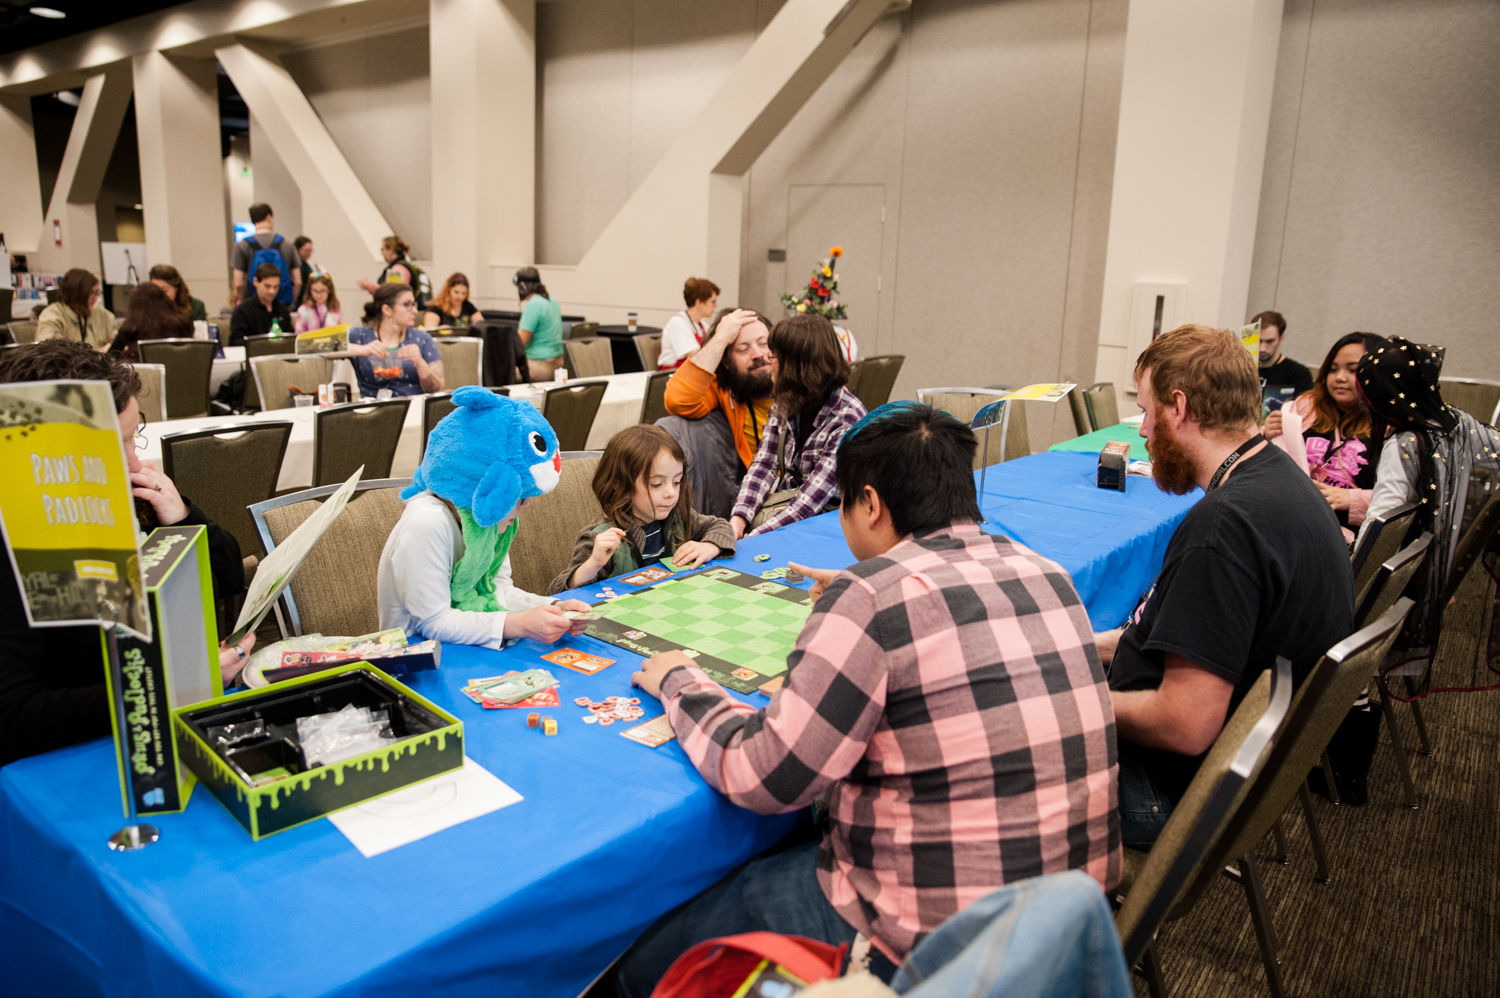 More than 12,000 people celebrated GeekGirlCon in downtown Seattle at the Conference Center this past weekend, an event dedicated to empowering women, girls, and non-binary geeks to pursue their passions — whether they love science and technology, comics, literature, gaming, or anything else. GGC believes everybody is a geek at heart, in one way or another, and we need to ensure all these geeks are supported, welcomed, and encouraged to pursue what they love. (Image: Elizabeth Crook / Seattle Refined){ }